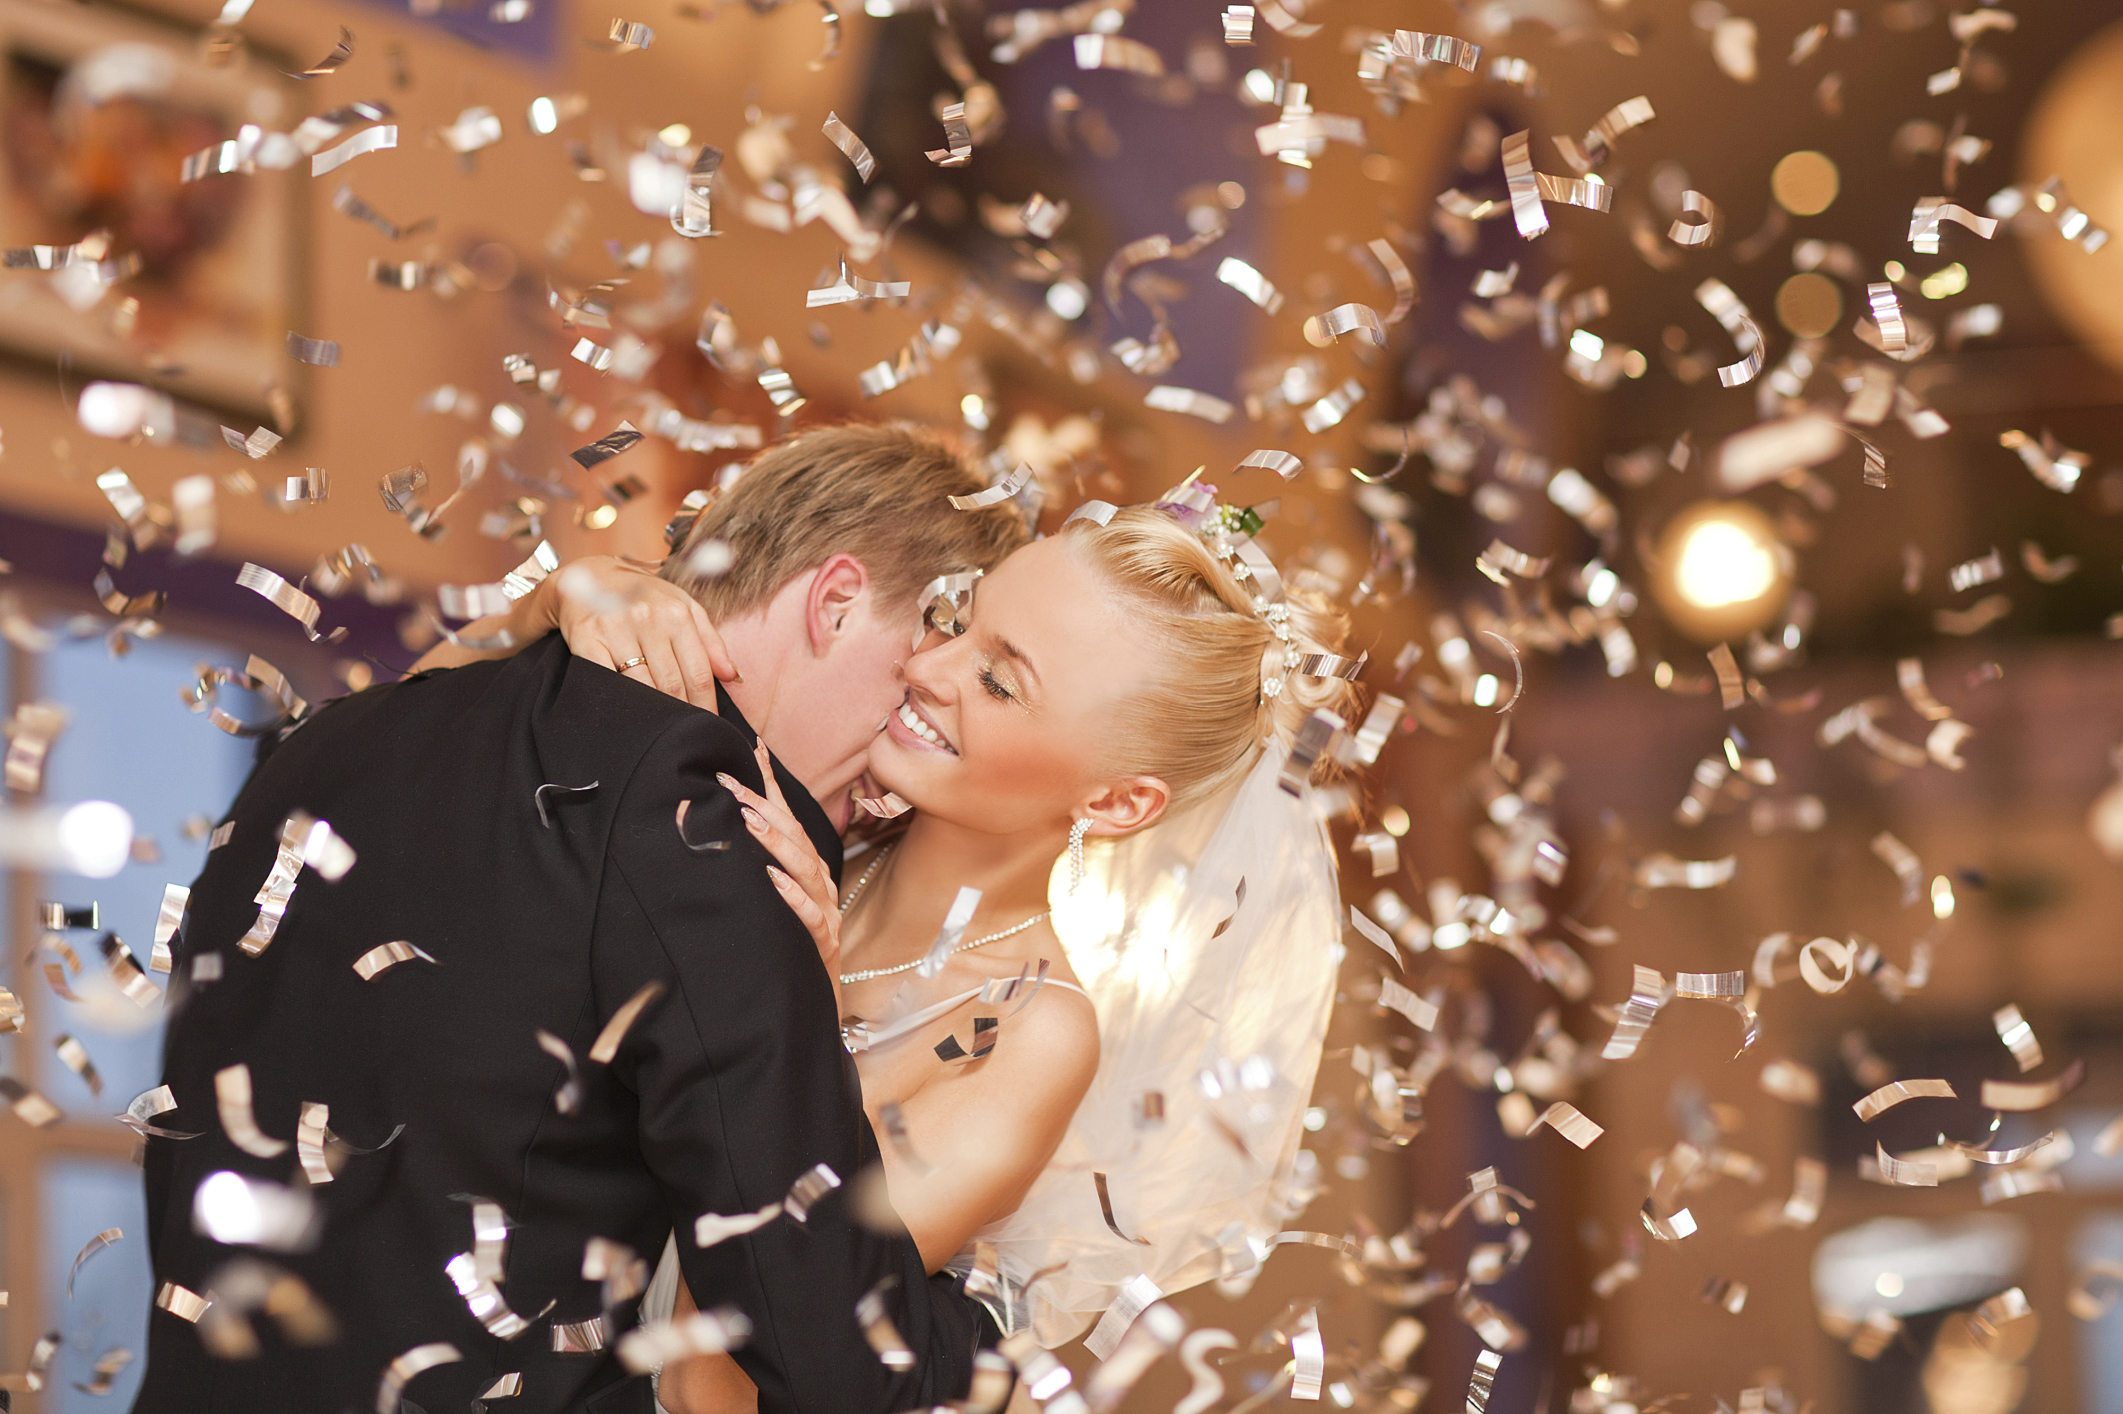 Throwing rice and confetti - Articles - Easy Weddings